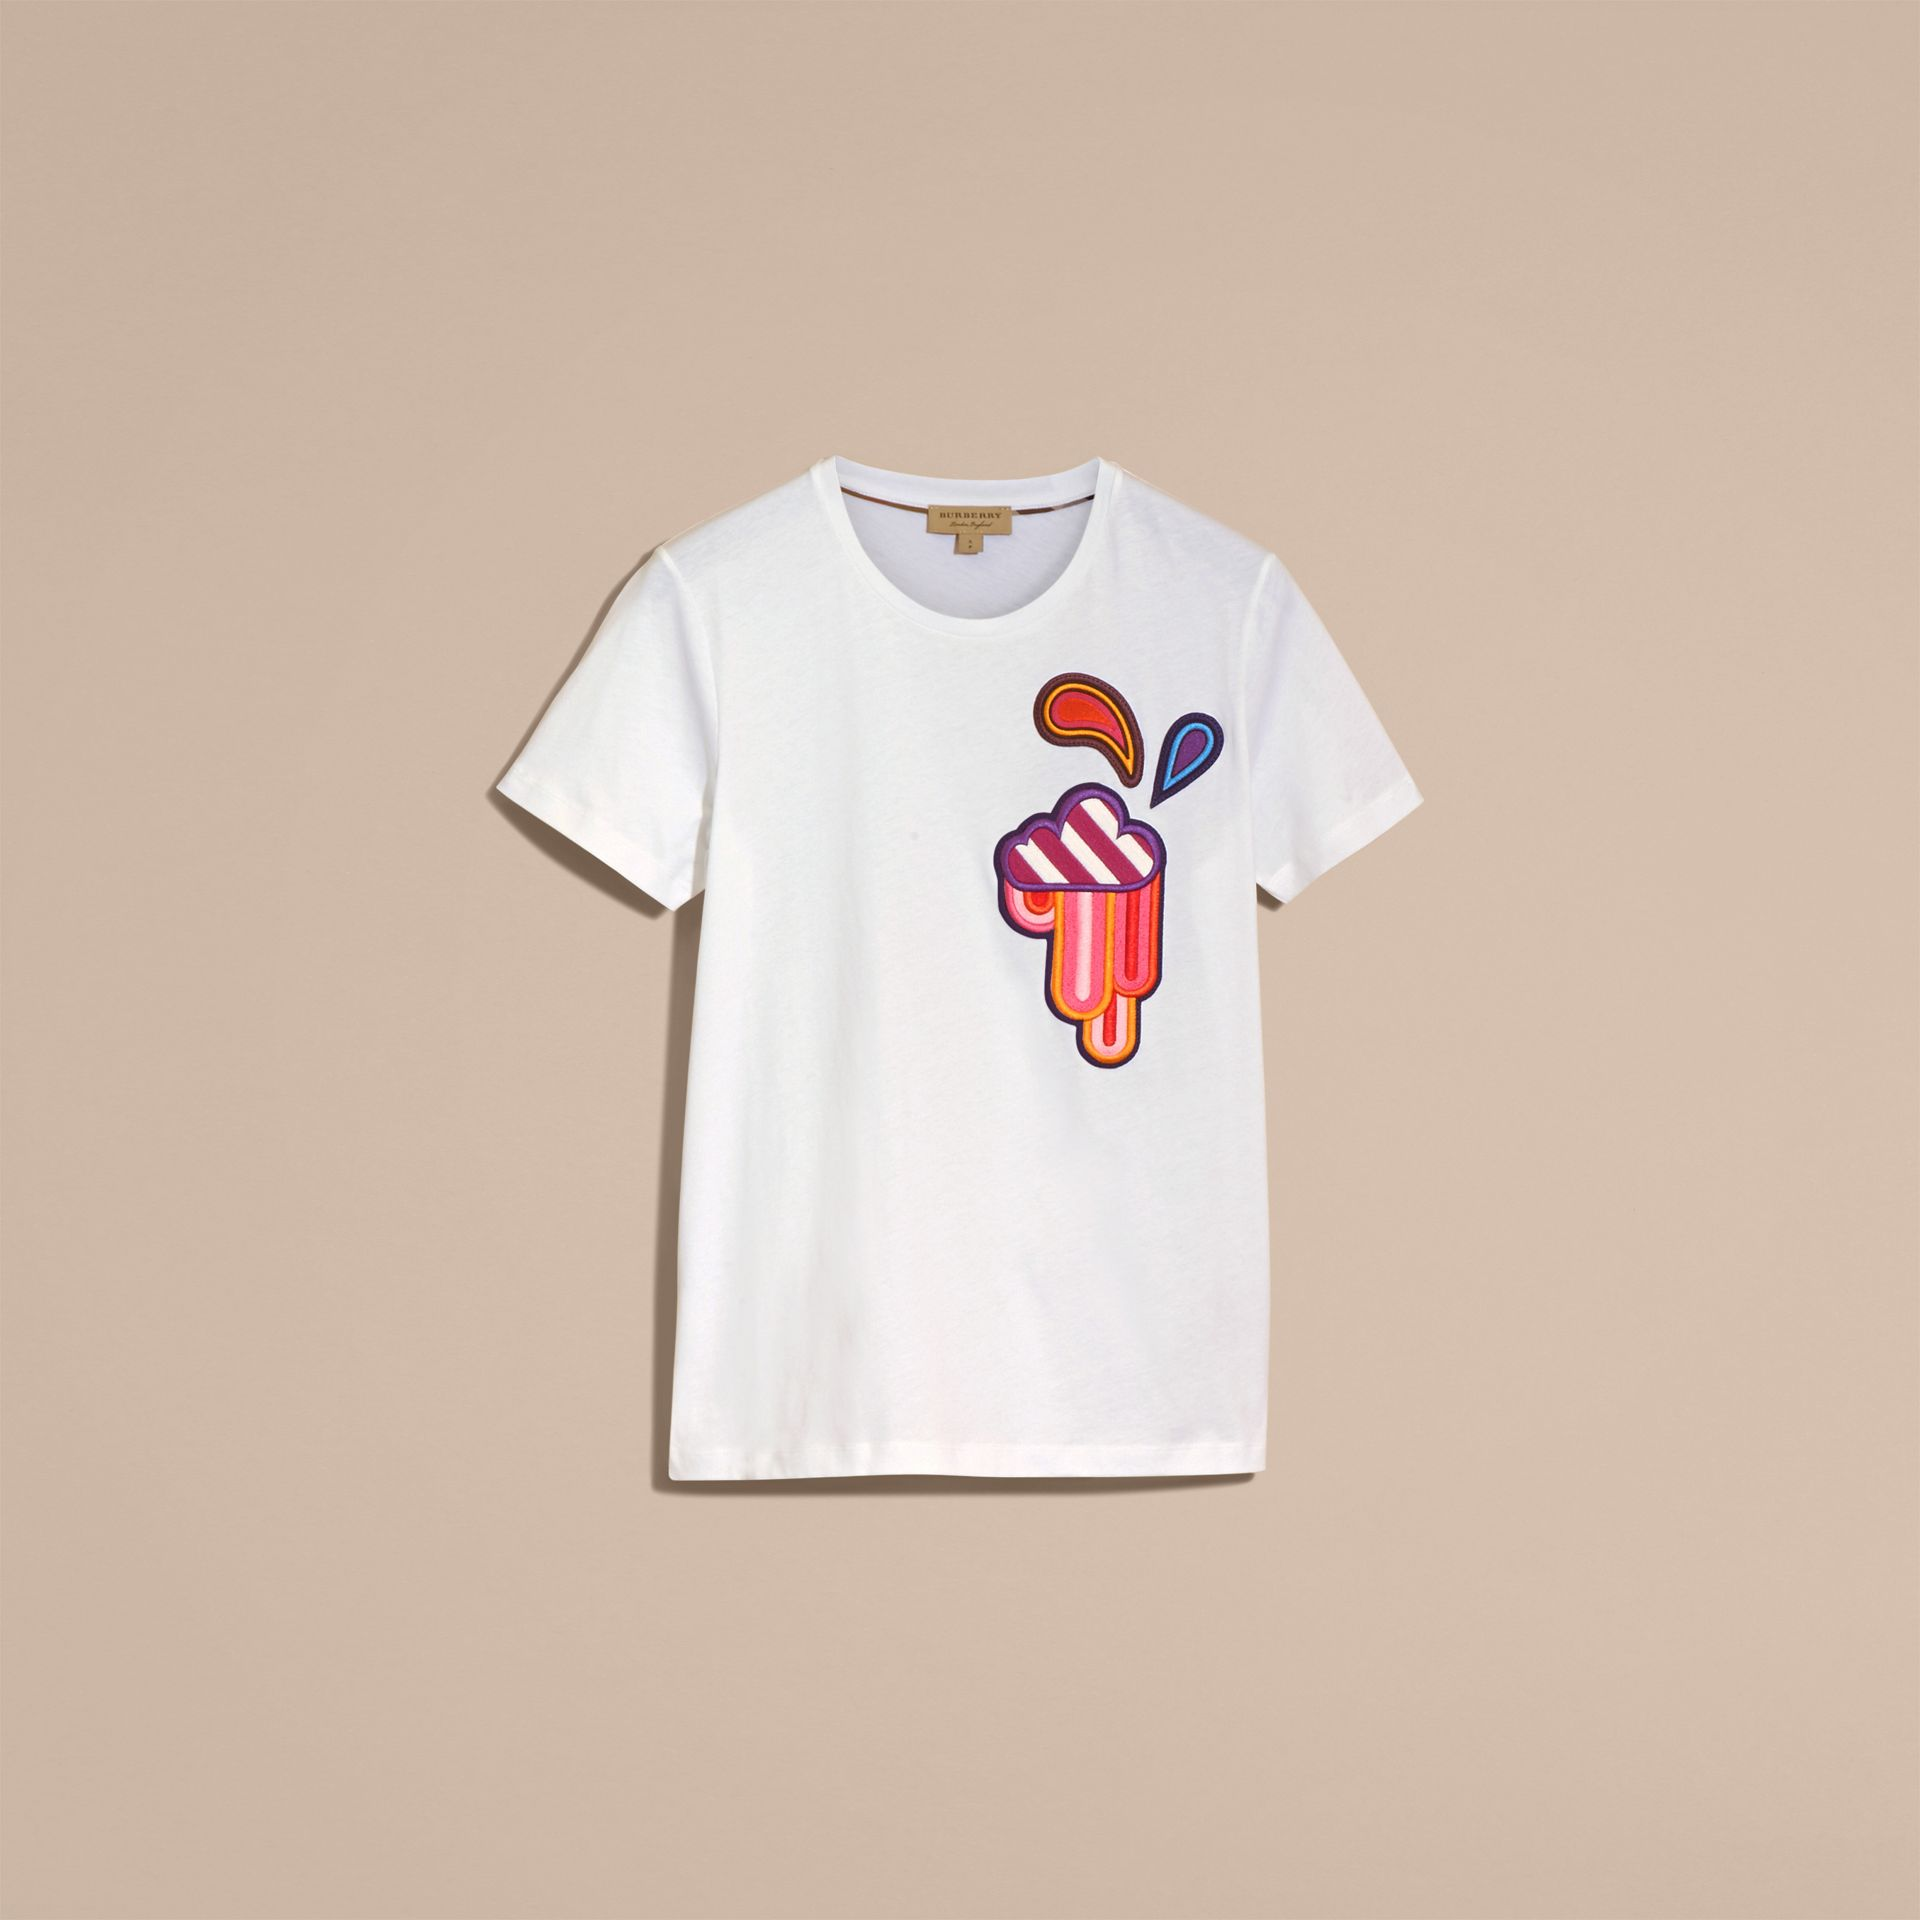 White Appliquéd Weather Motif Cotton T-shirt White - gallery image 4